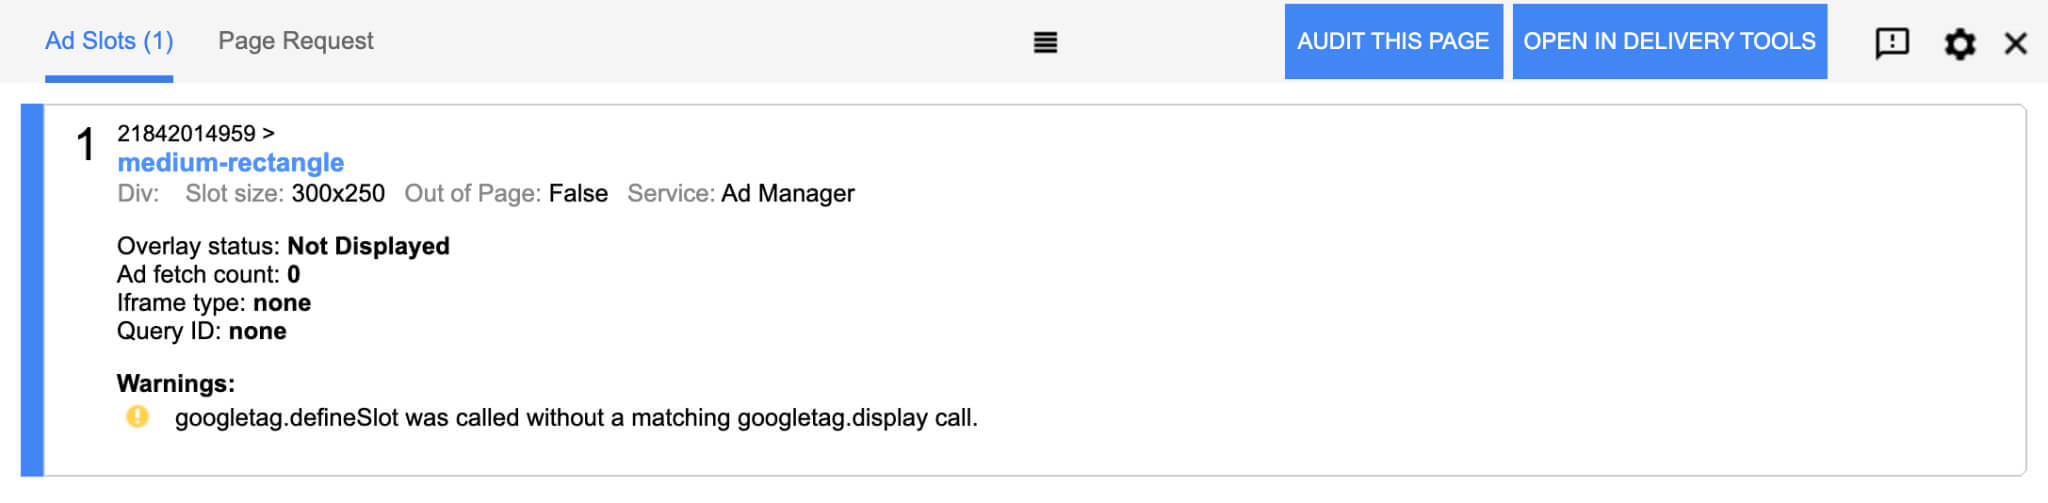 warning googletag.defineSlot was called without a matching googletag.display call